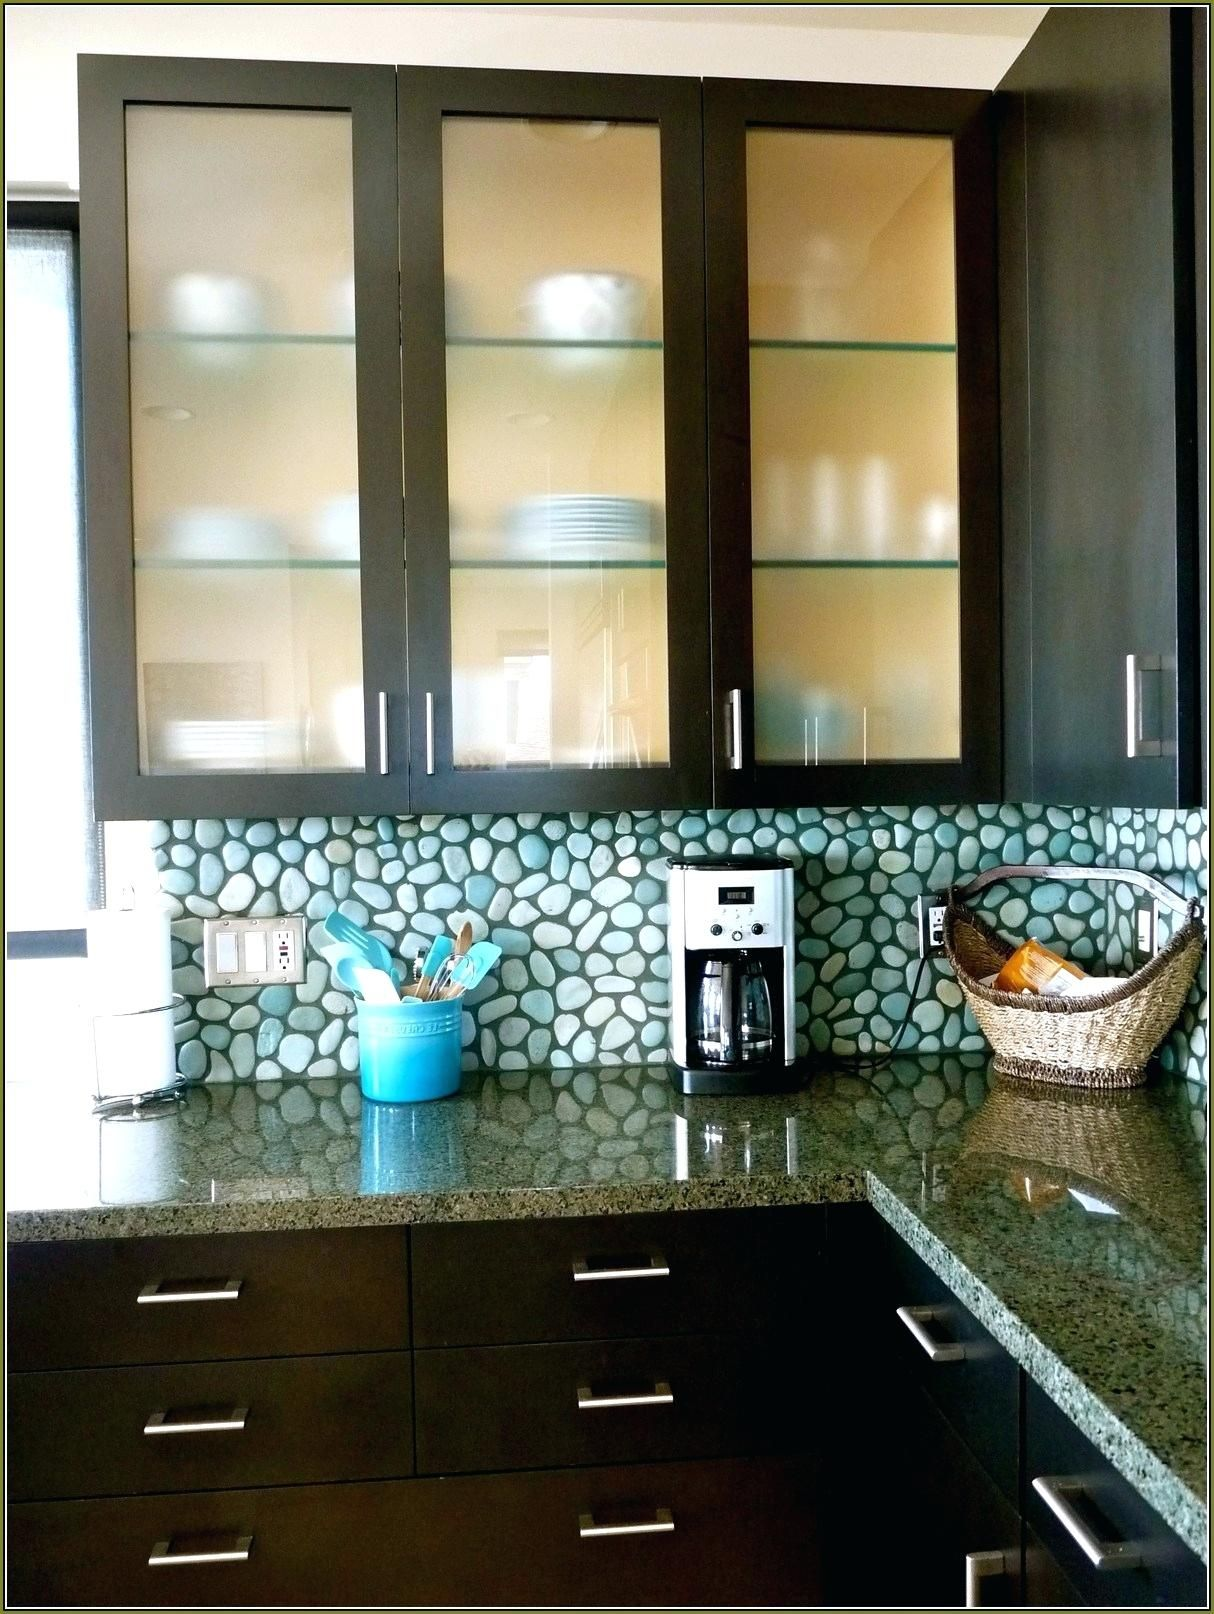 Captivating Frosted Glass Kitchen Cabinet Doors Glass Kitchen Cabinets Glass Kitchen Cabinet Doors Modern Kitchen Cabinet Design